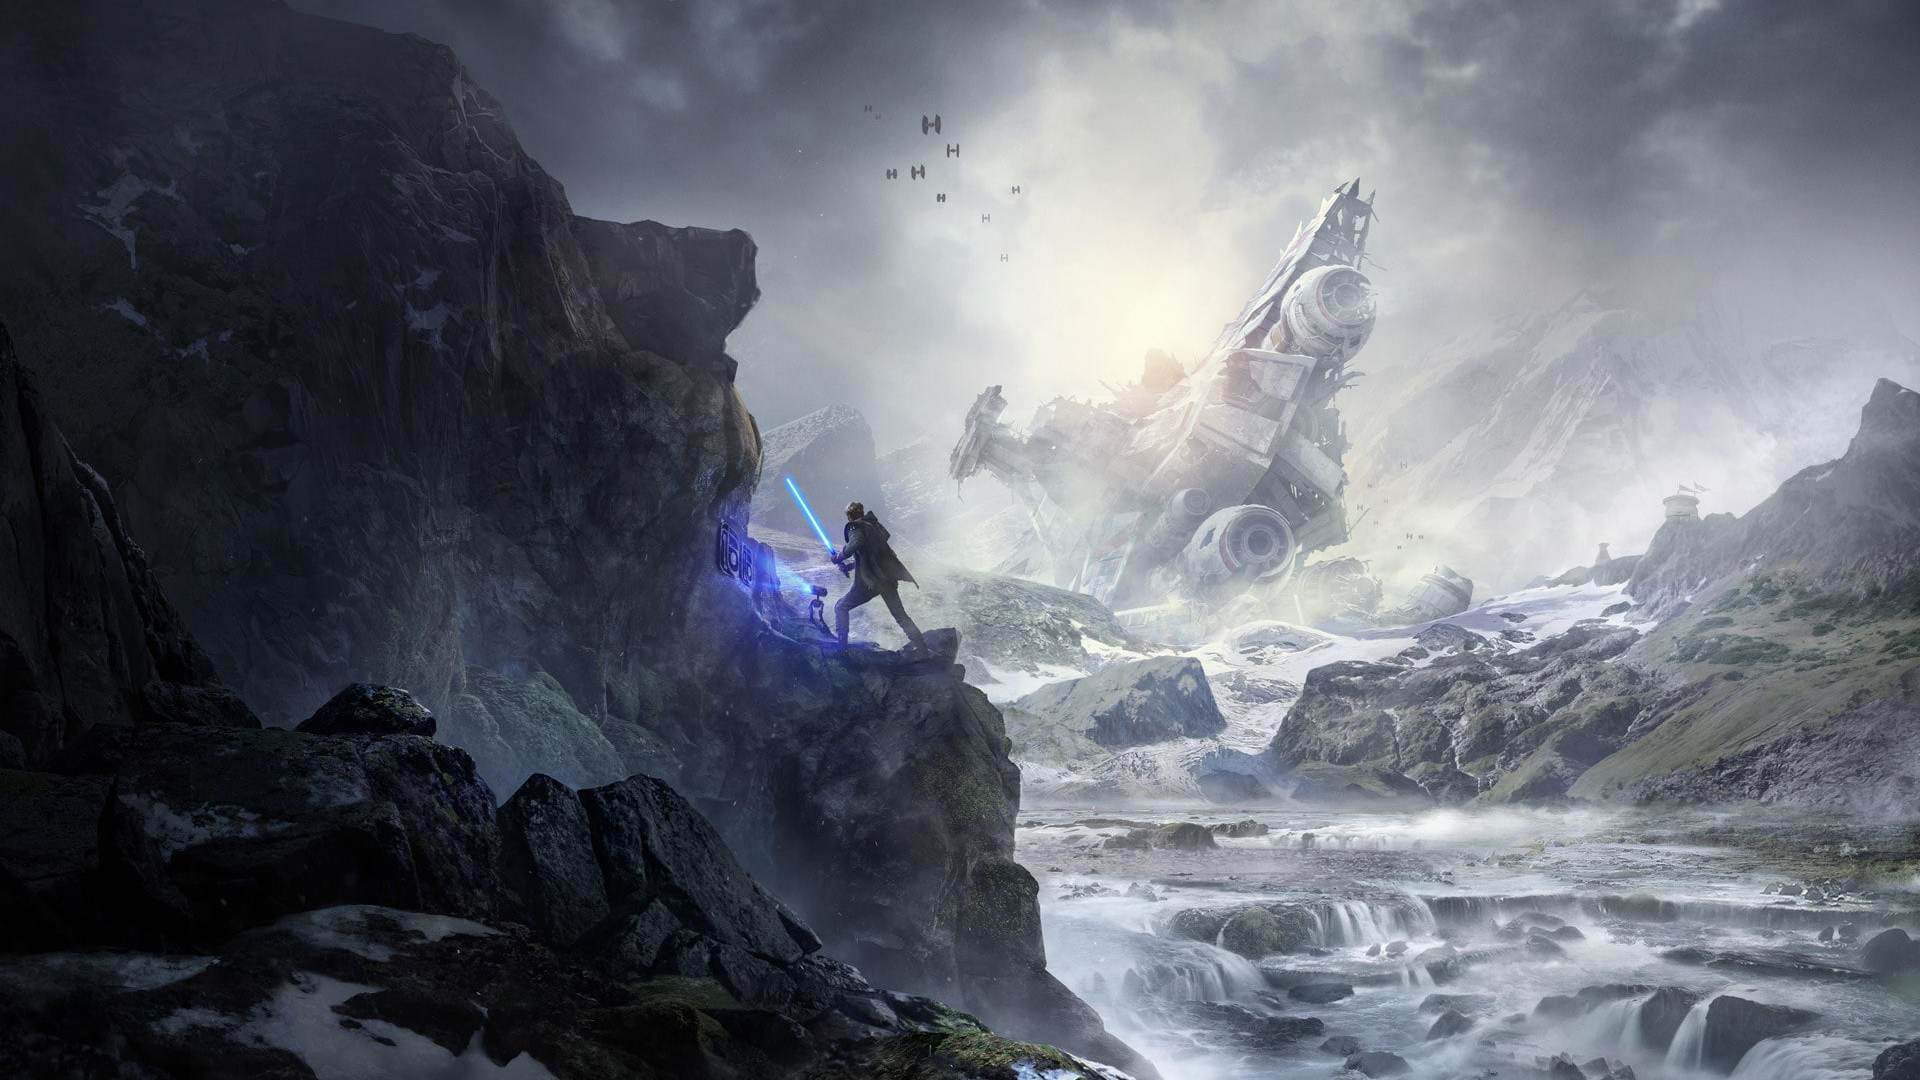 Star Wars Jedi Fallen Order Concept Art Wallpapers